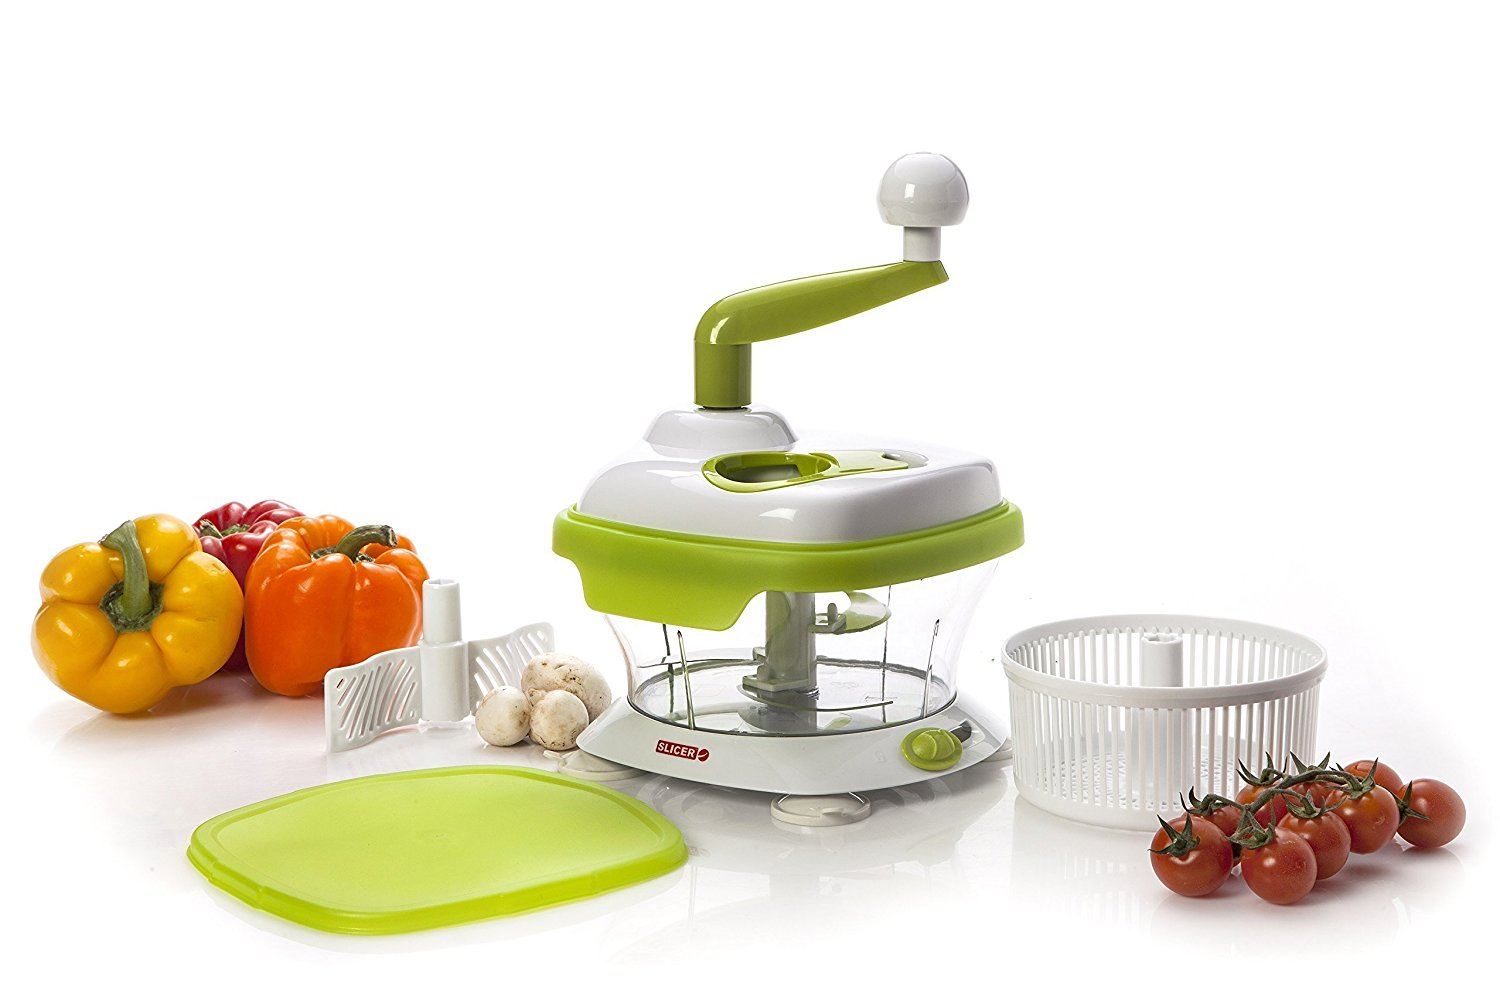 The Original Authentic MASTER SLICER Dicer Chopper Spinner for Fruits, Herbs, Salad,... by